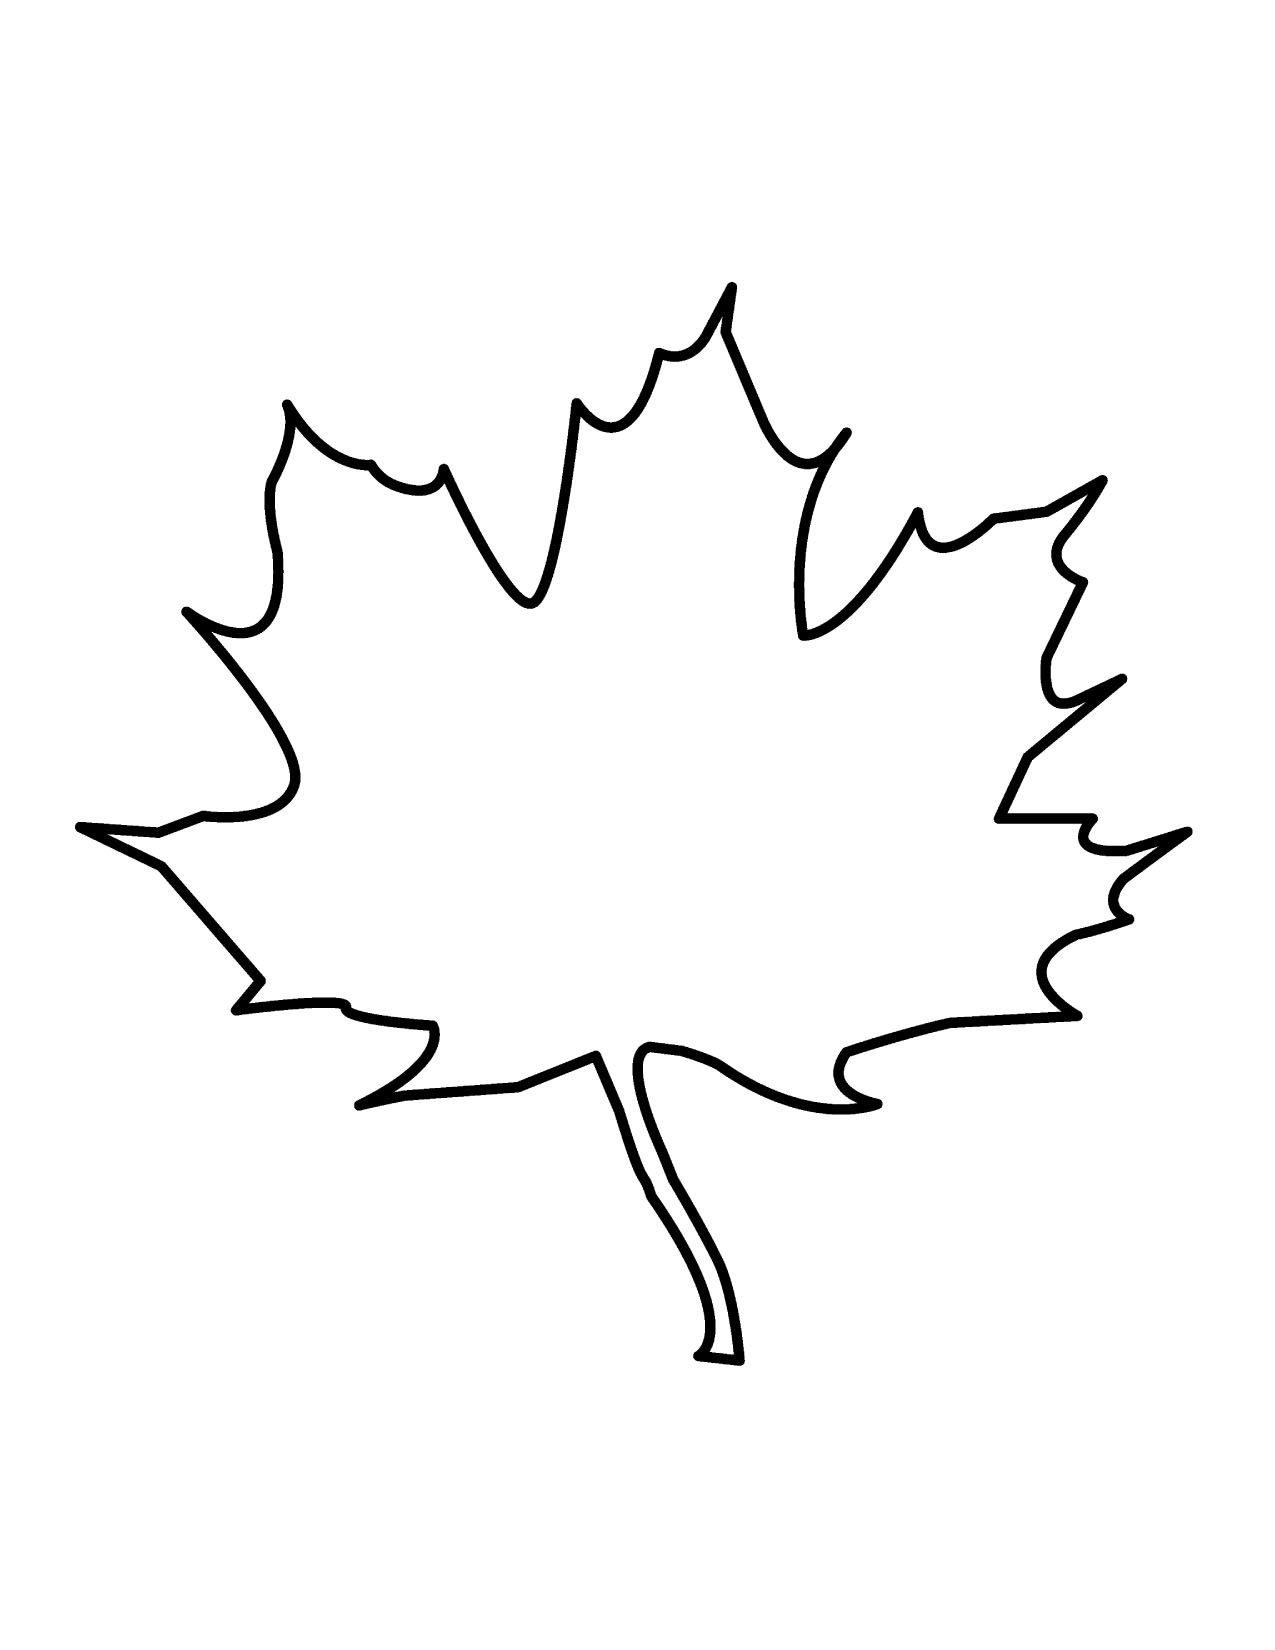 Drawings Of Leaf - ClipArt Best | Clip art, Free clip art ...